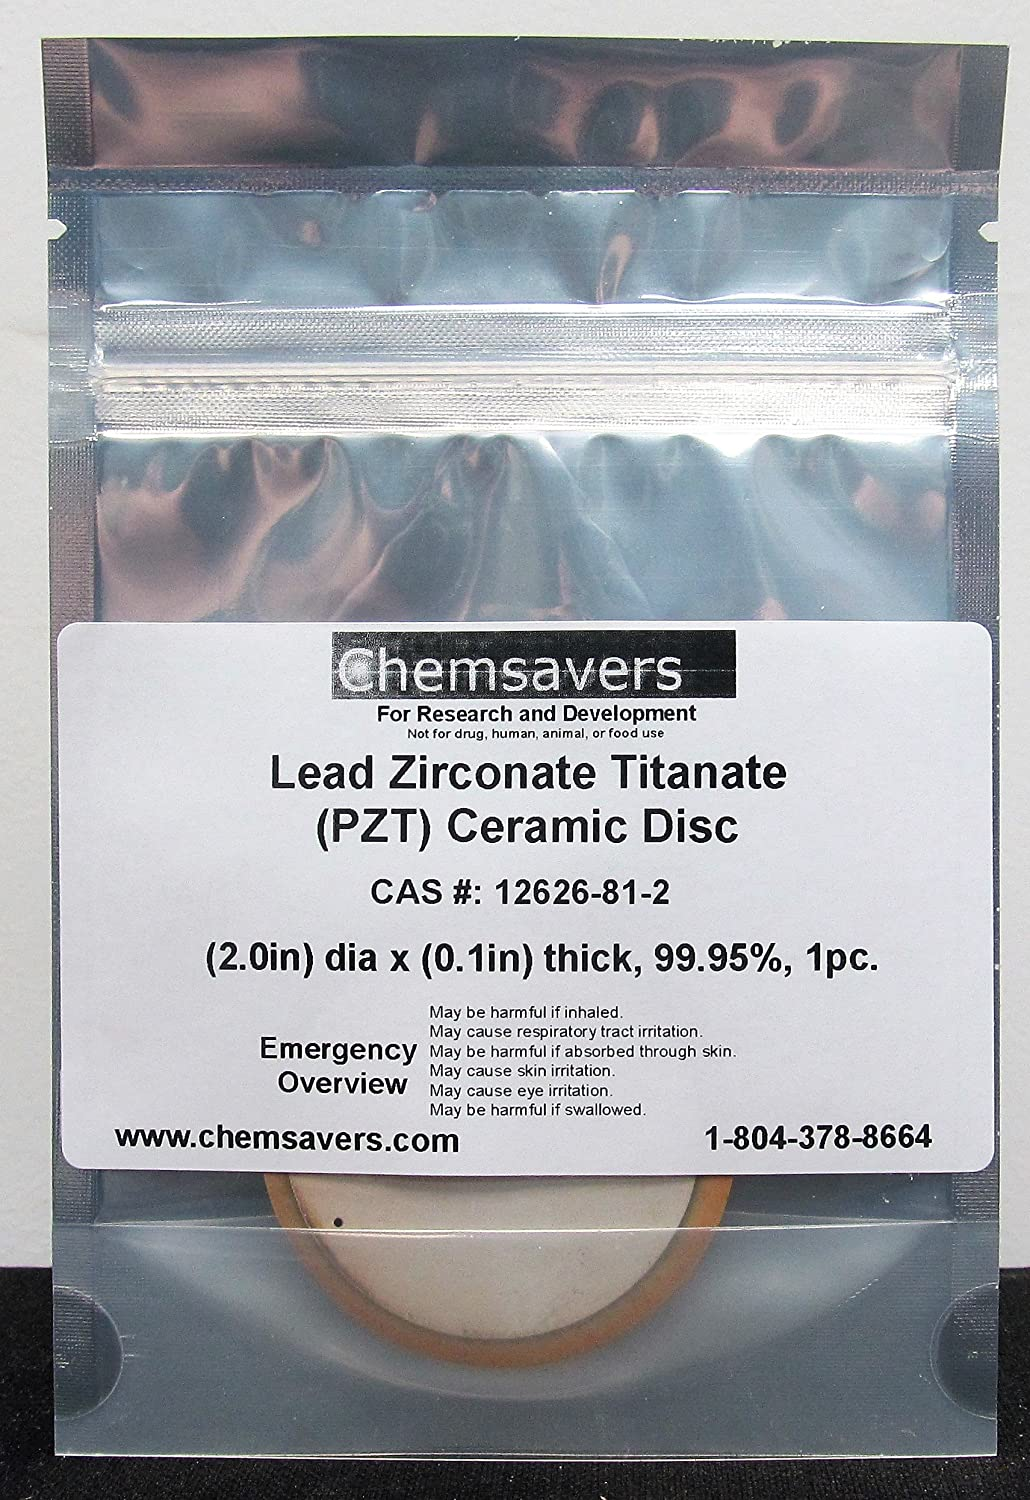 Lead Zirconate Titanate (PZT), Ceramic Disc (2.0in) Dia x (0.1in) Thick, 99.95%, 1pc.